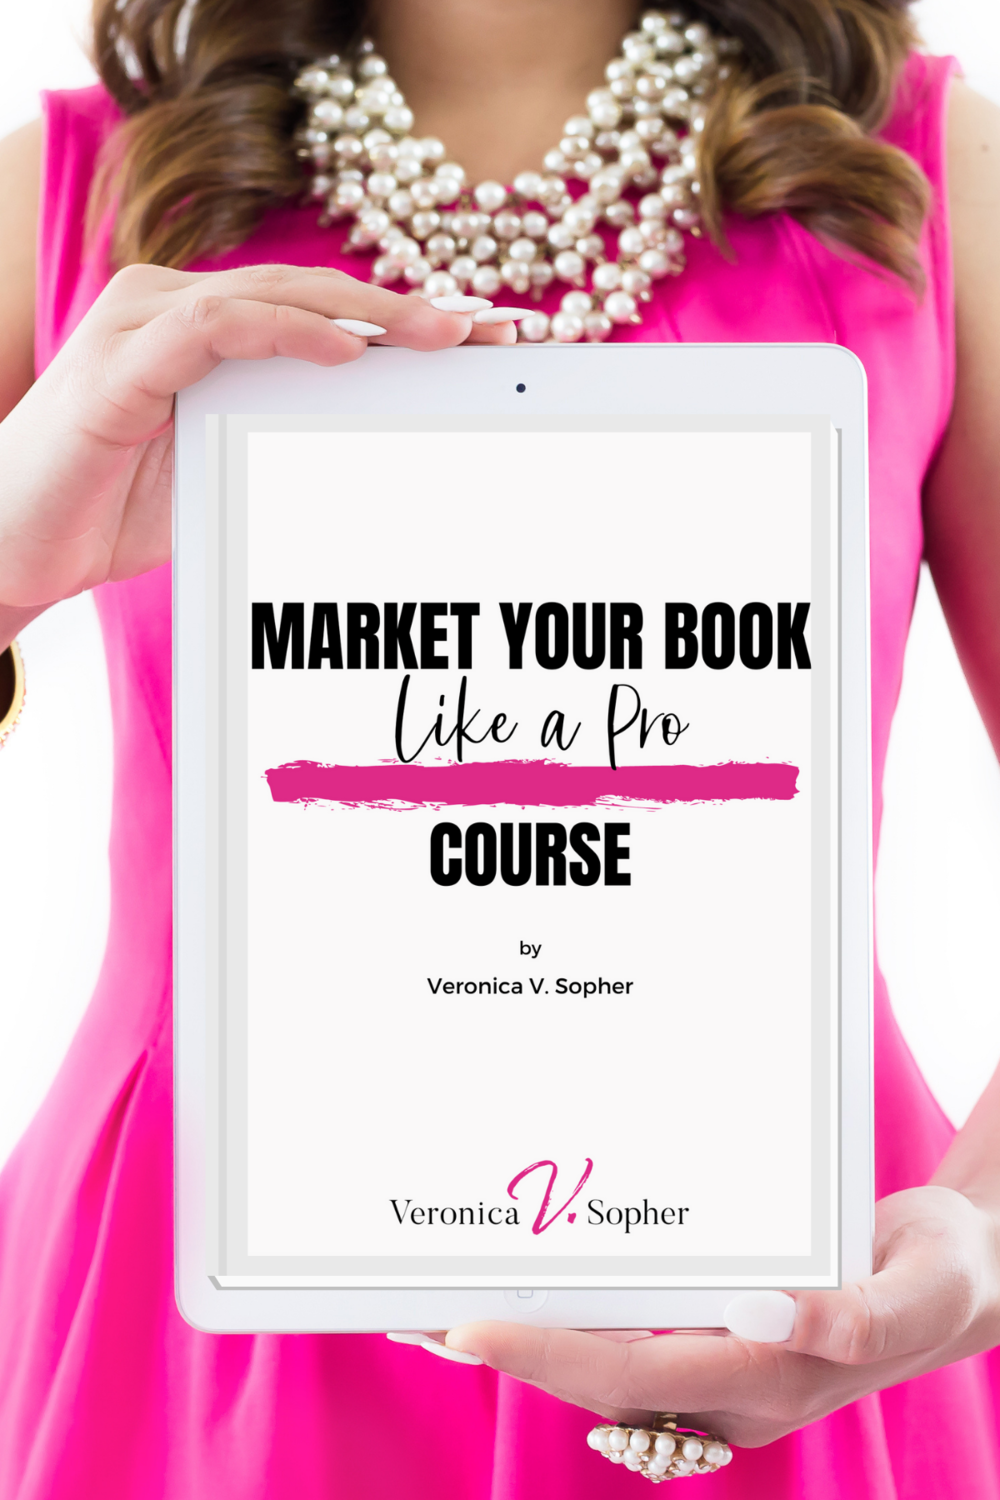 Market Your Book by Veronica V. Sopher